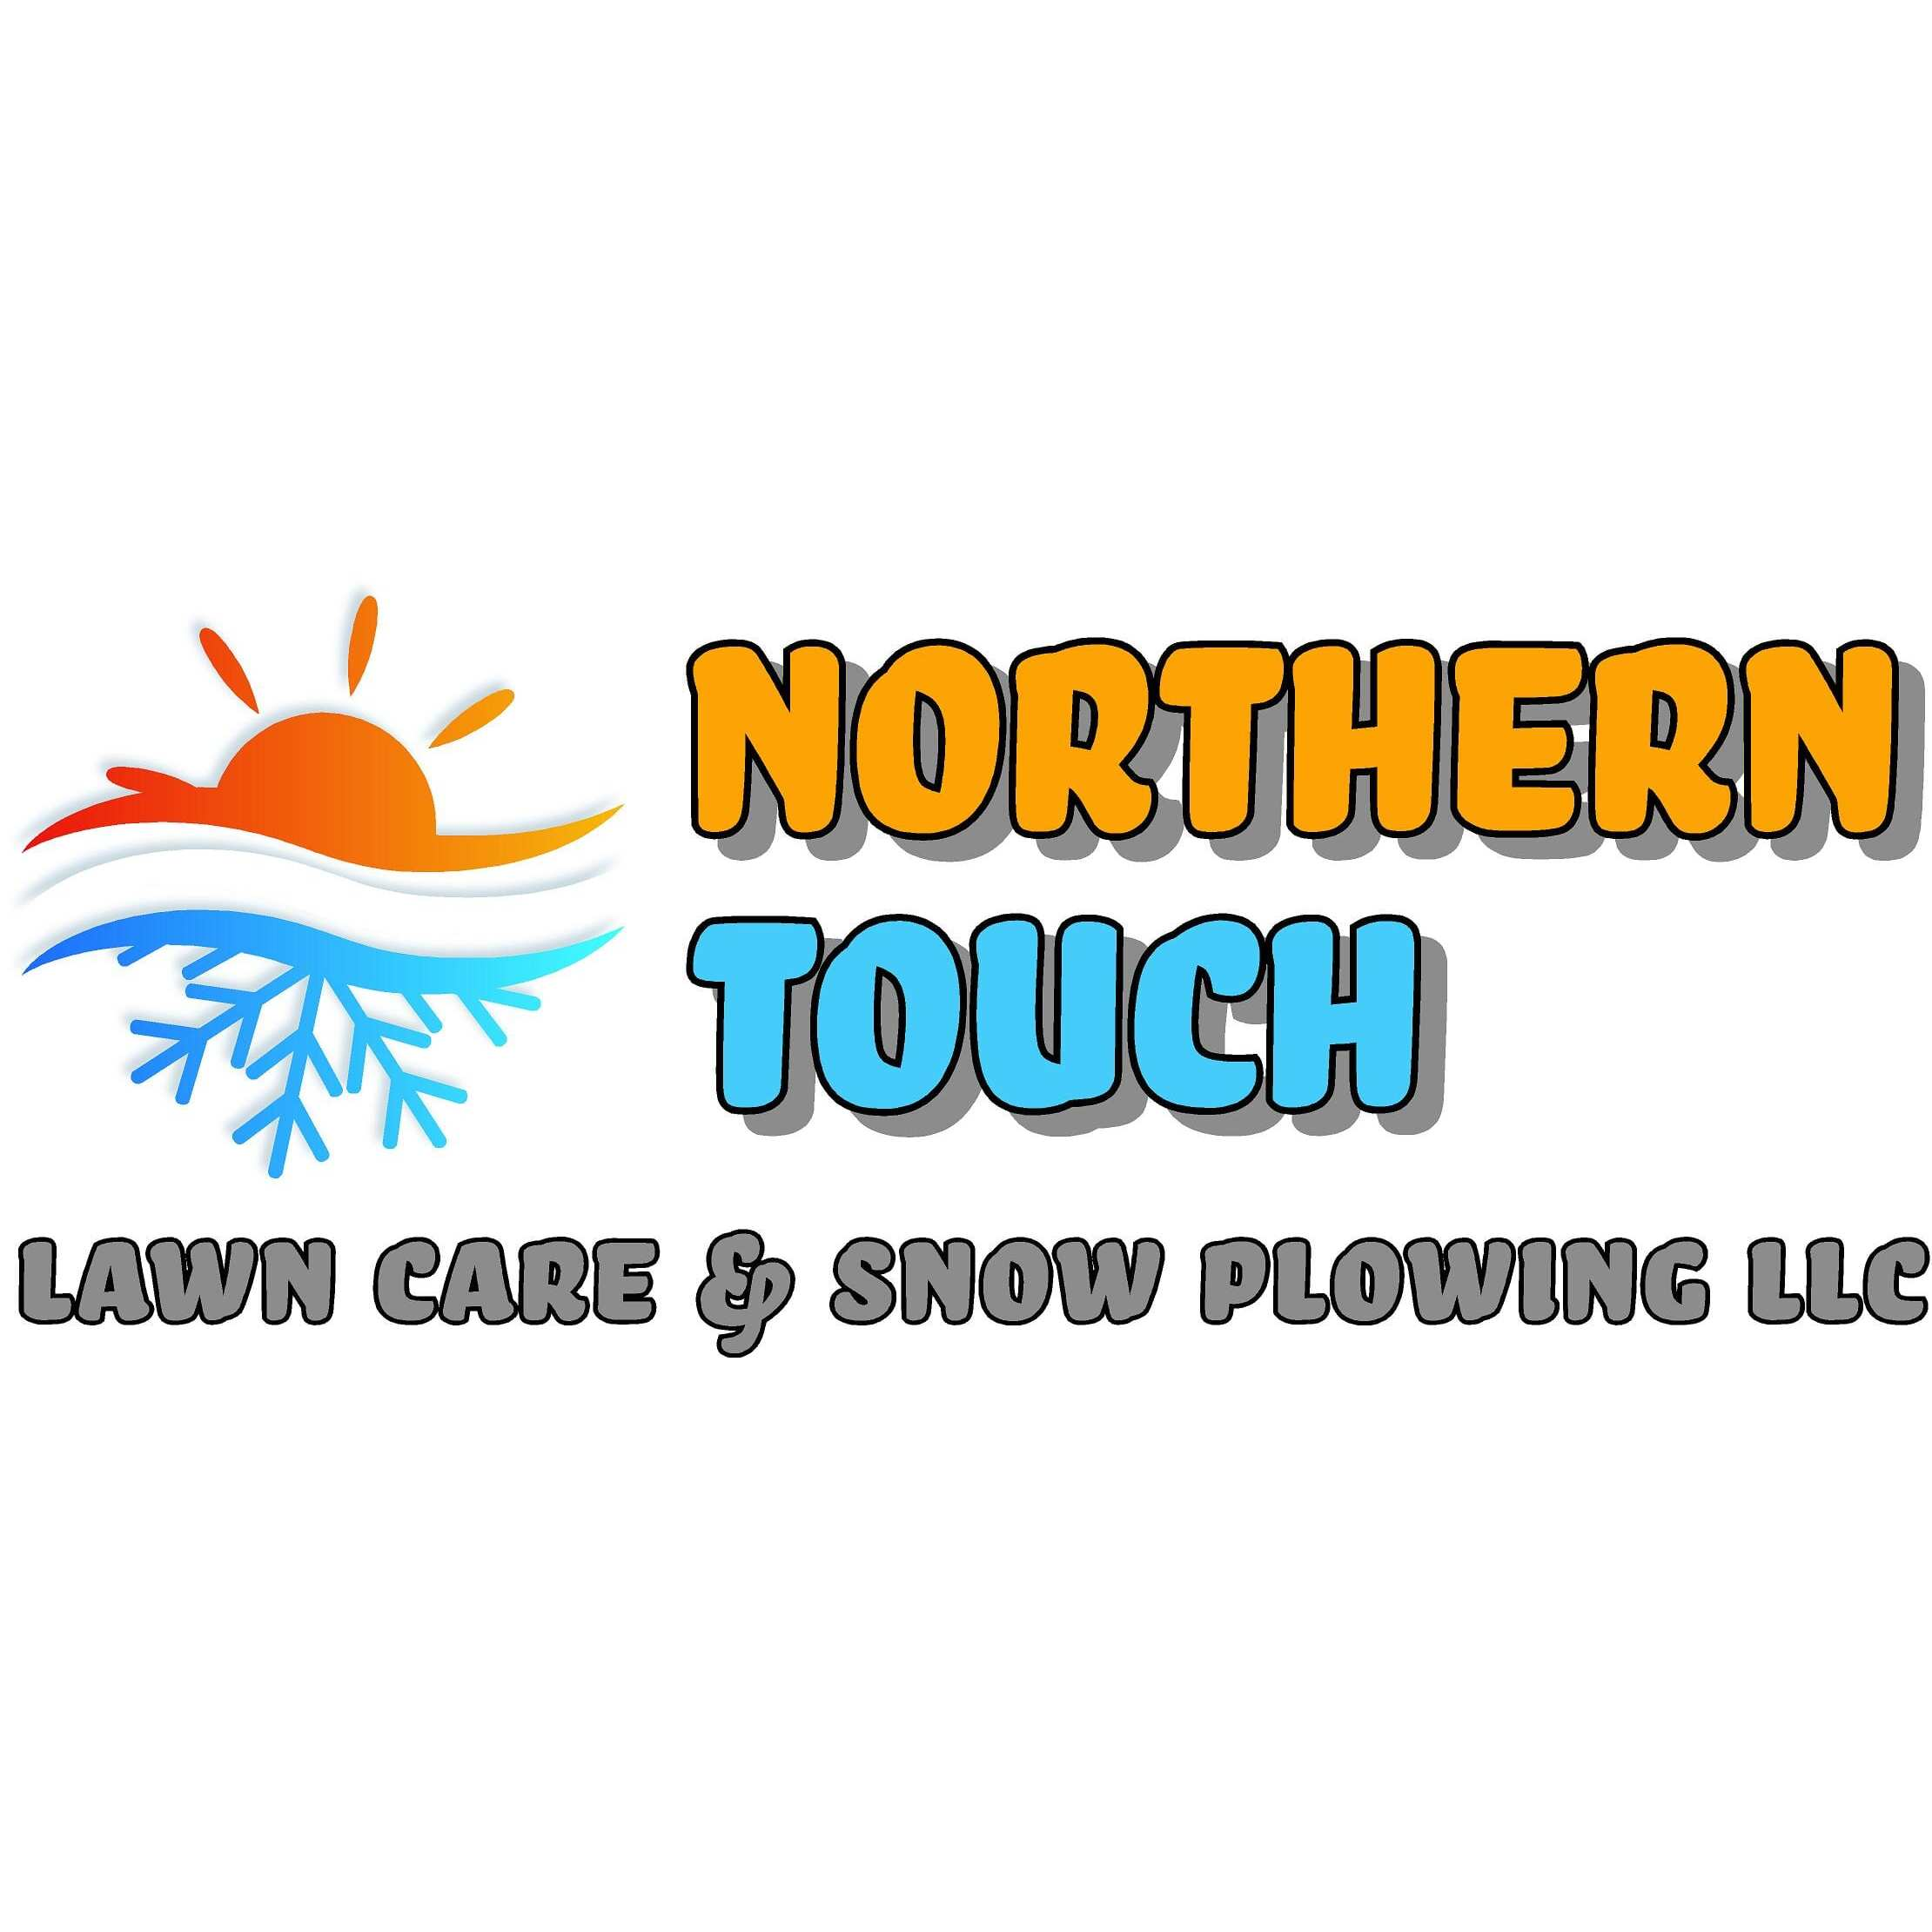 Northern Touch Lawn Care & Snow Plowing LLC